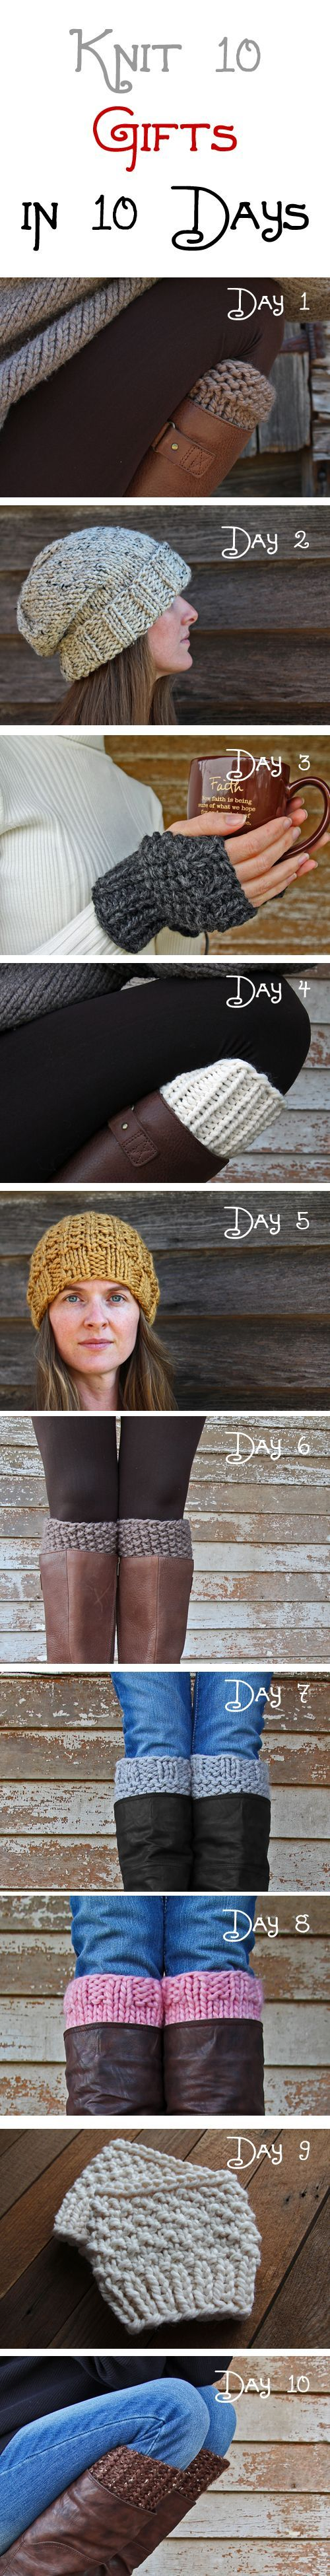 Knit 10 Gifts in 10 Days | Brome Fields - knitting patterns for quick & easy…